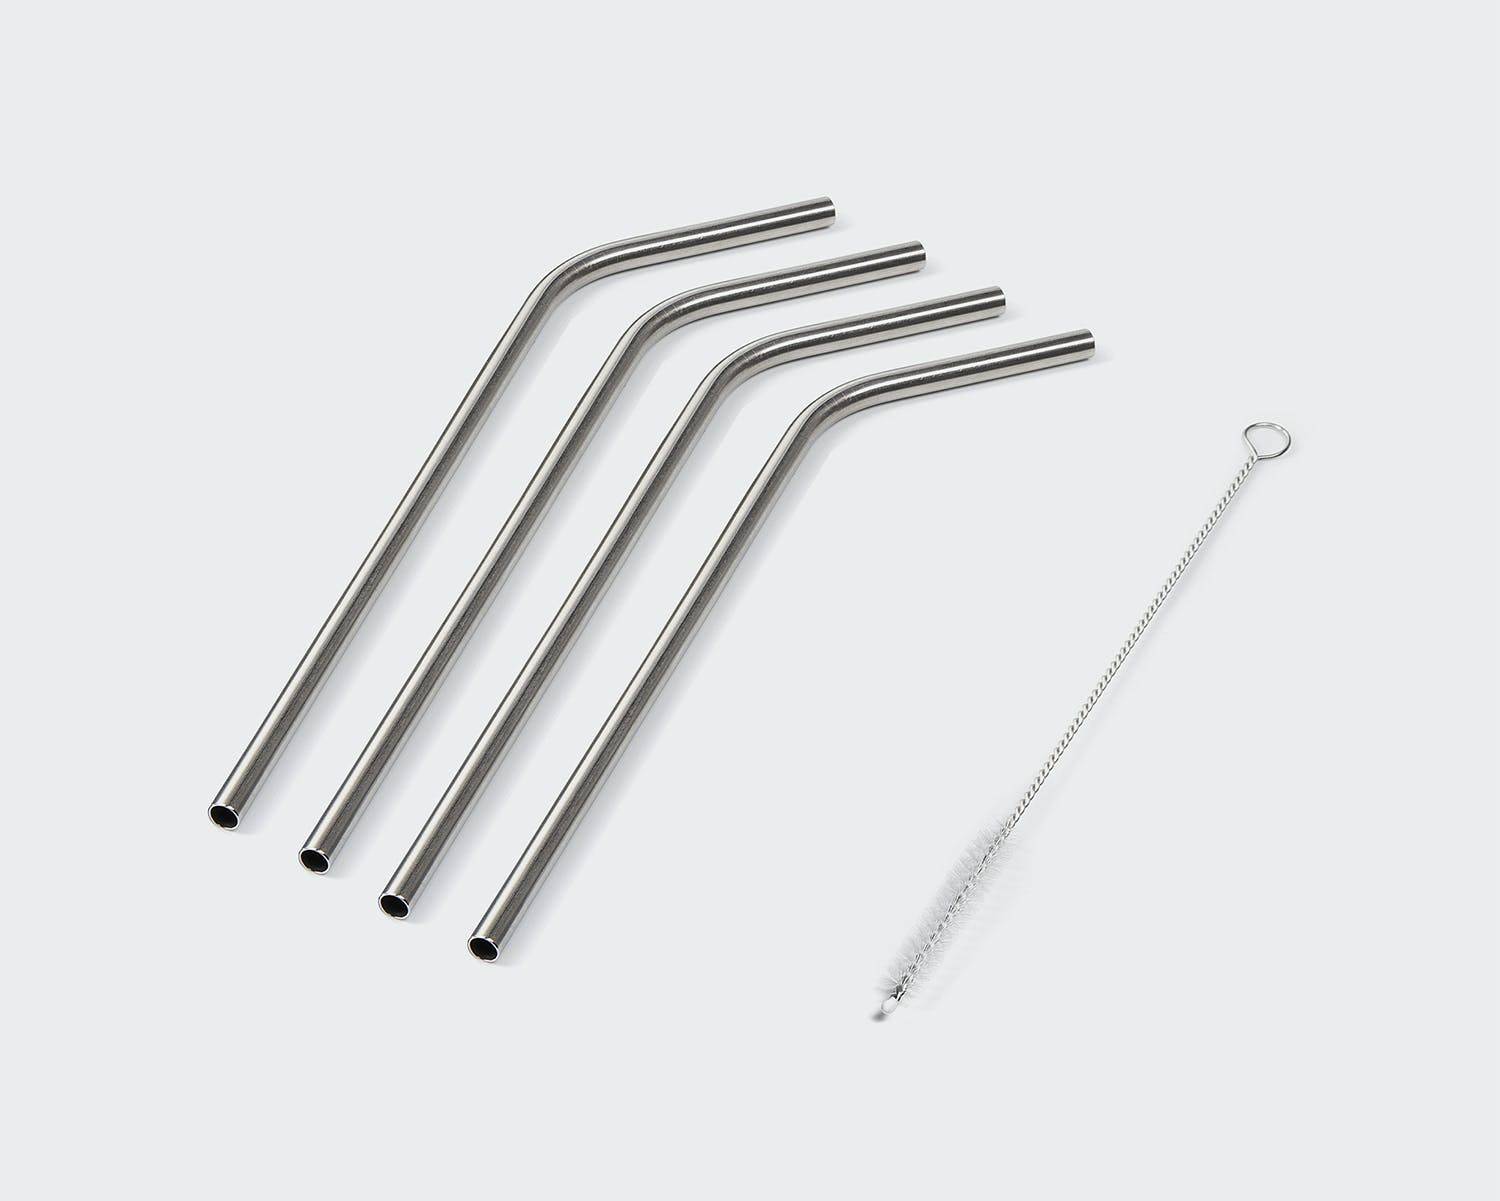 NutriBullet 4-Pack Stainless Steel Straws